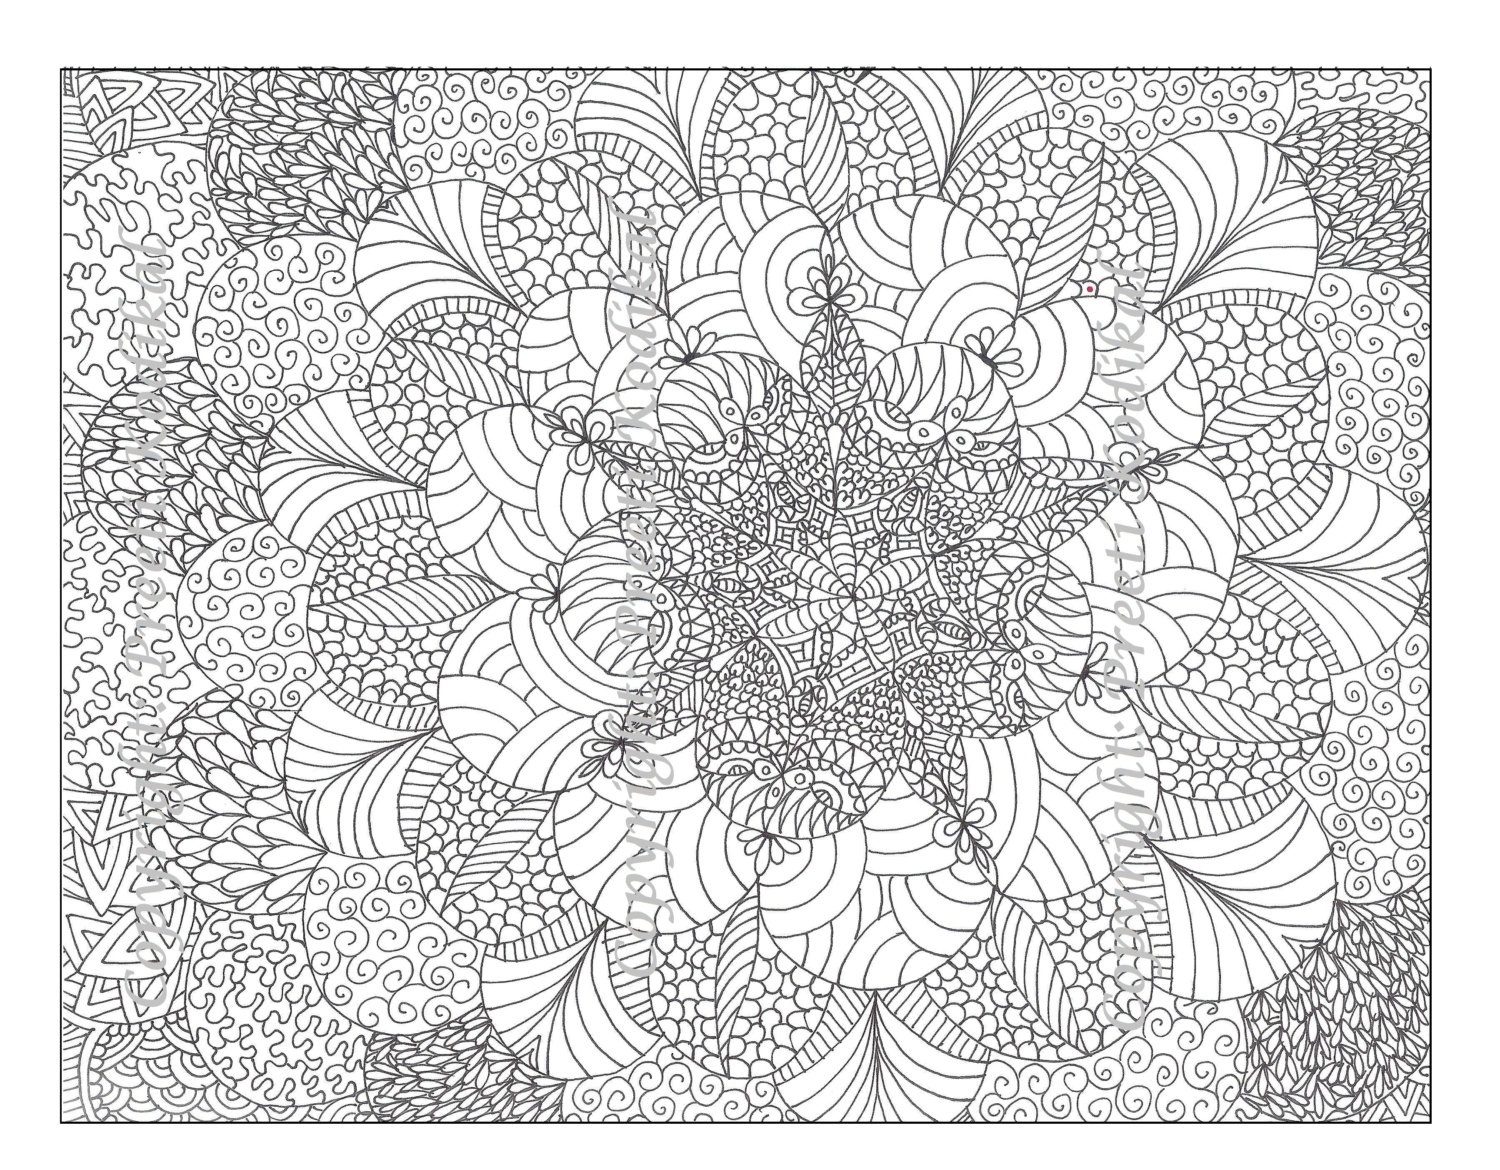 Free Printable Abstract Coloring Pages For Adults - Free Printable Hard Coloring Pages For Adults